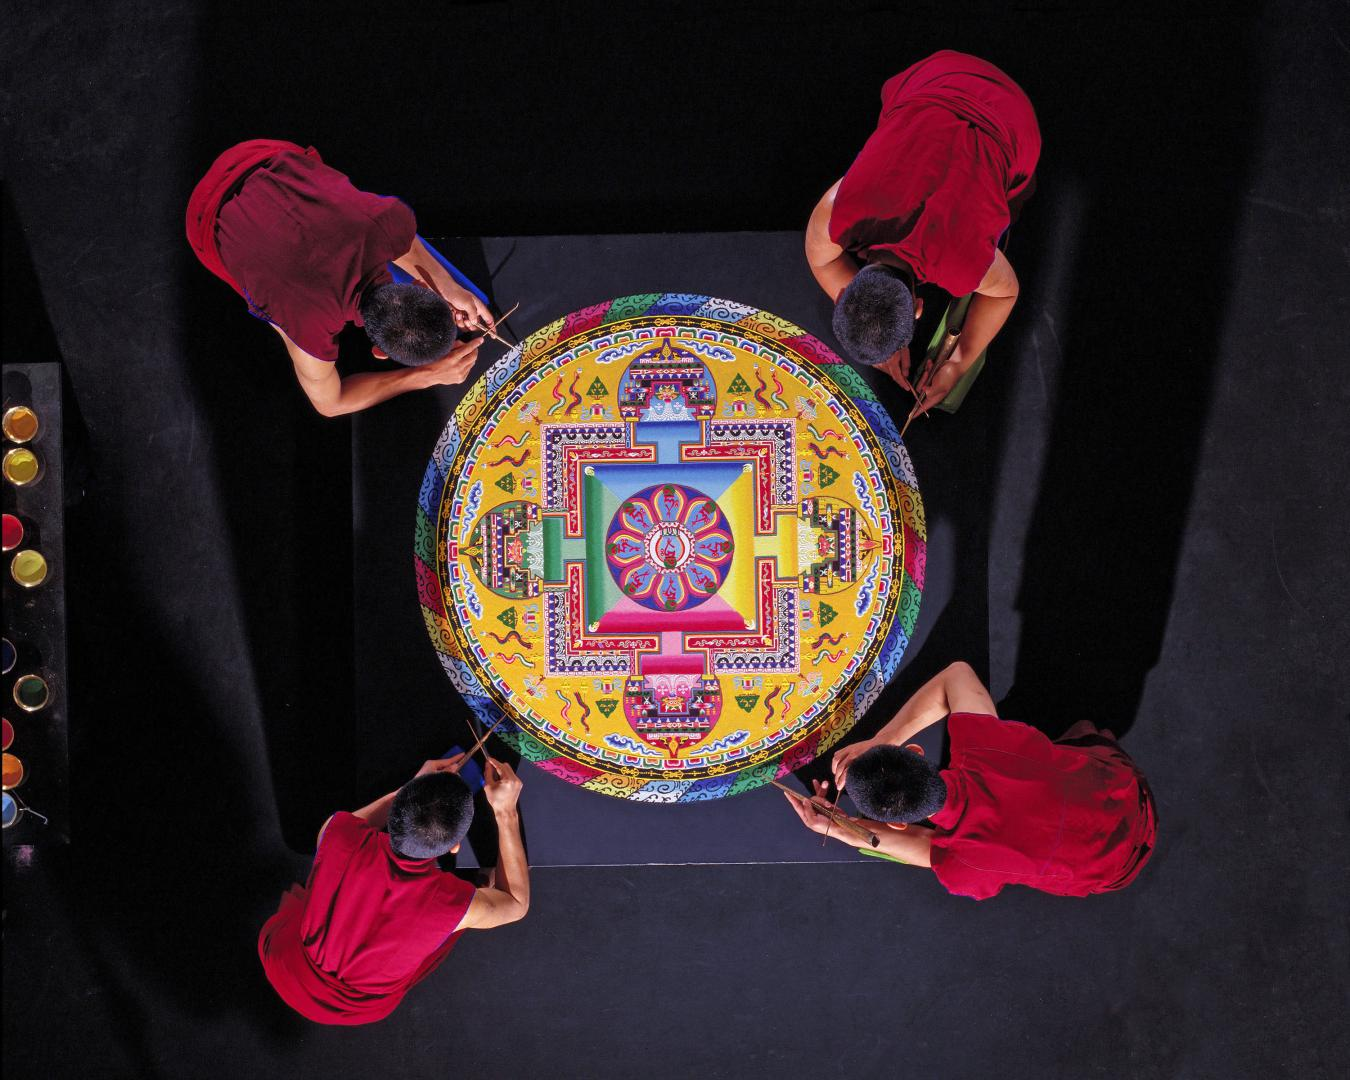 Mandala Sand Painting constructed by Tibetan Buddhist monks from Drepung Loseling Monastery pictured